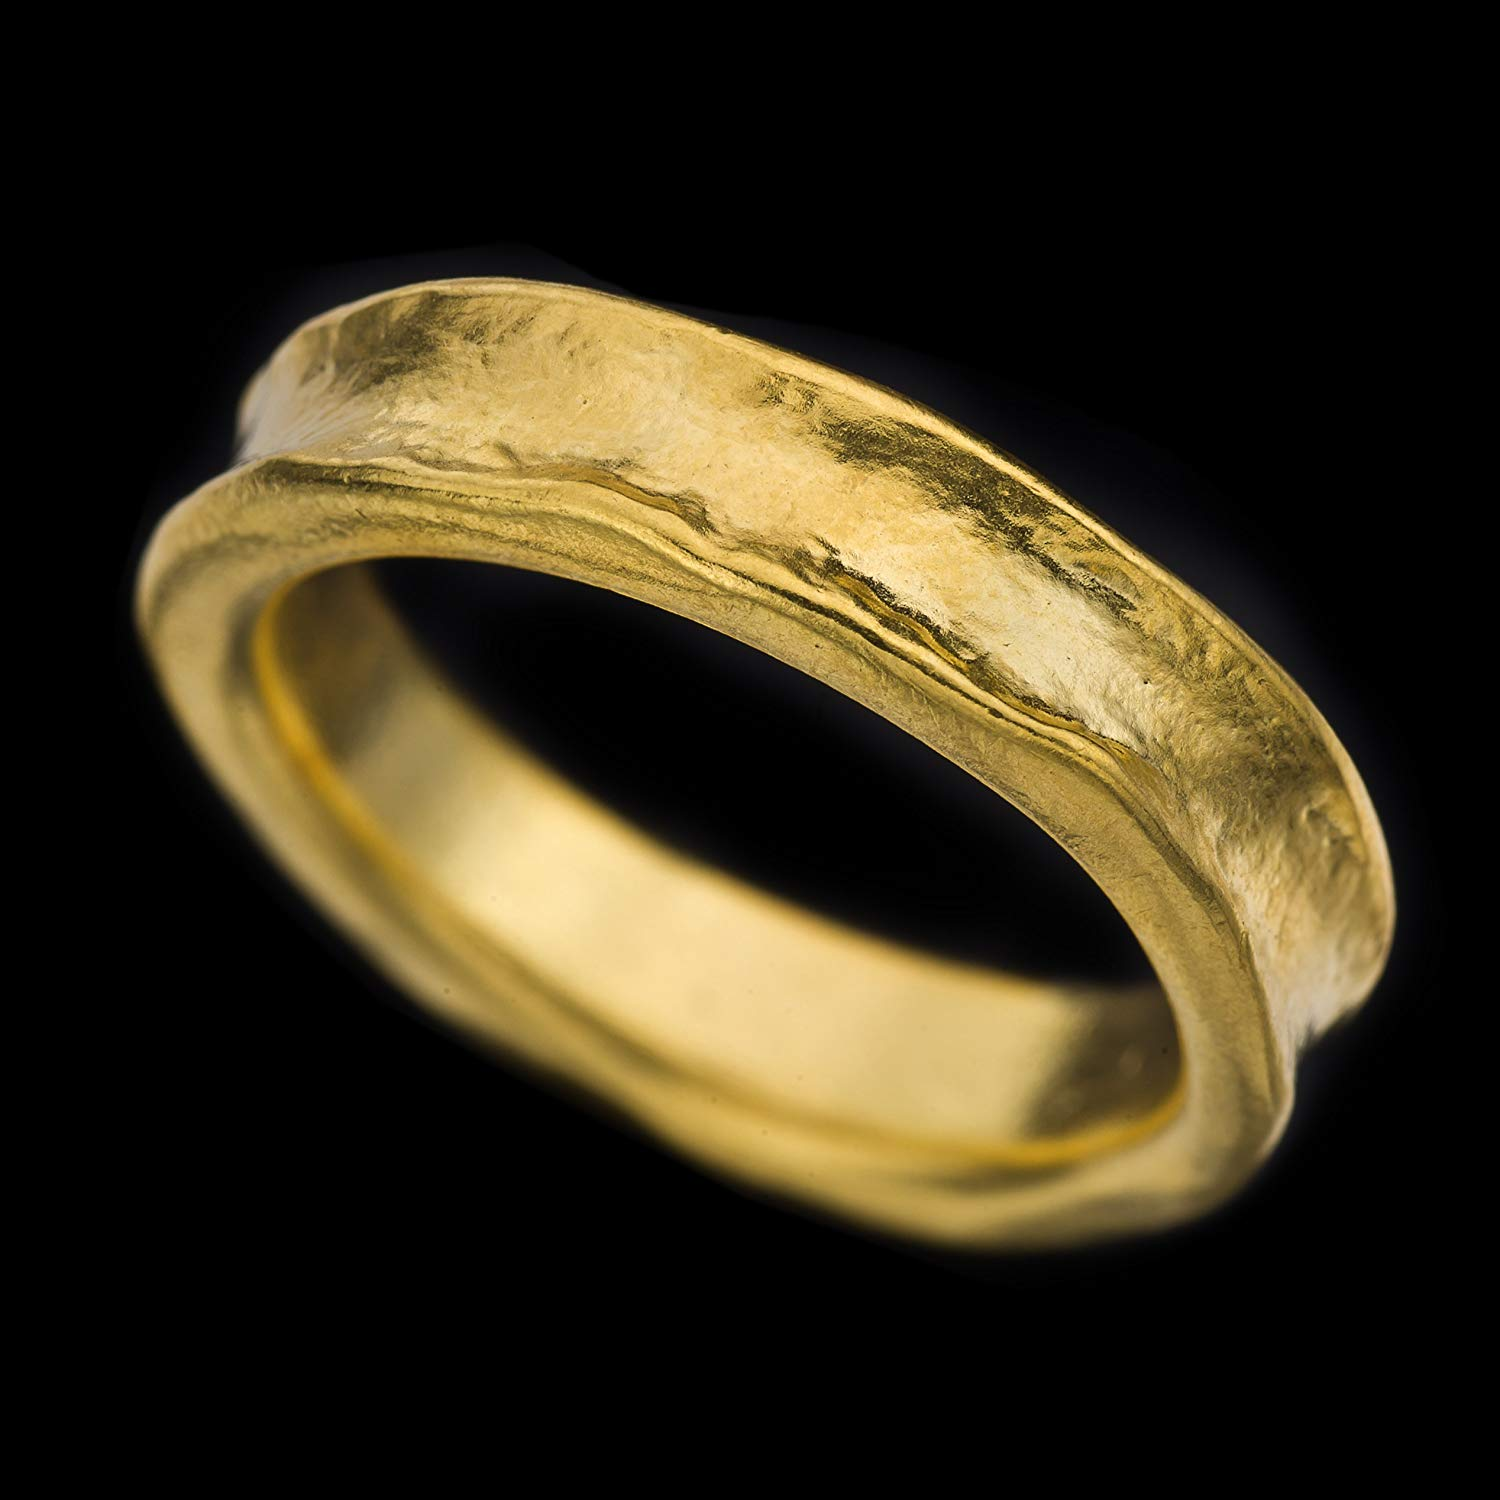 Rough Looking 18k Solid Gold Wedding Ring,Naturally Curved Wedding Band, Unisex Jewelry,Handmade,Fine Jewelry,Resizable.R49-18K